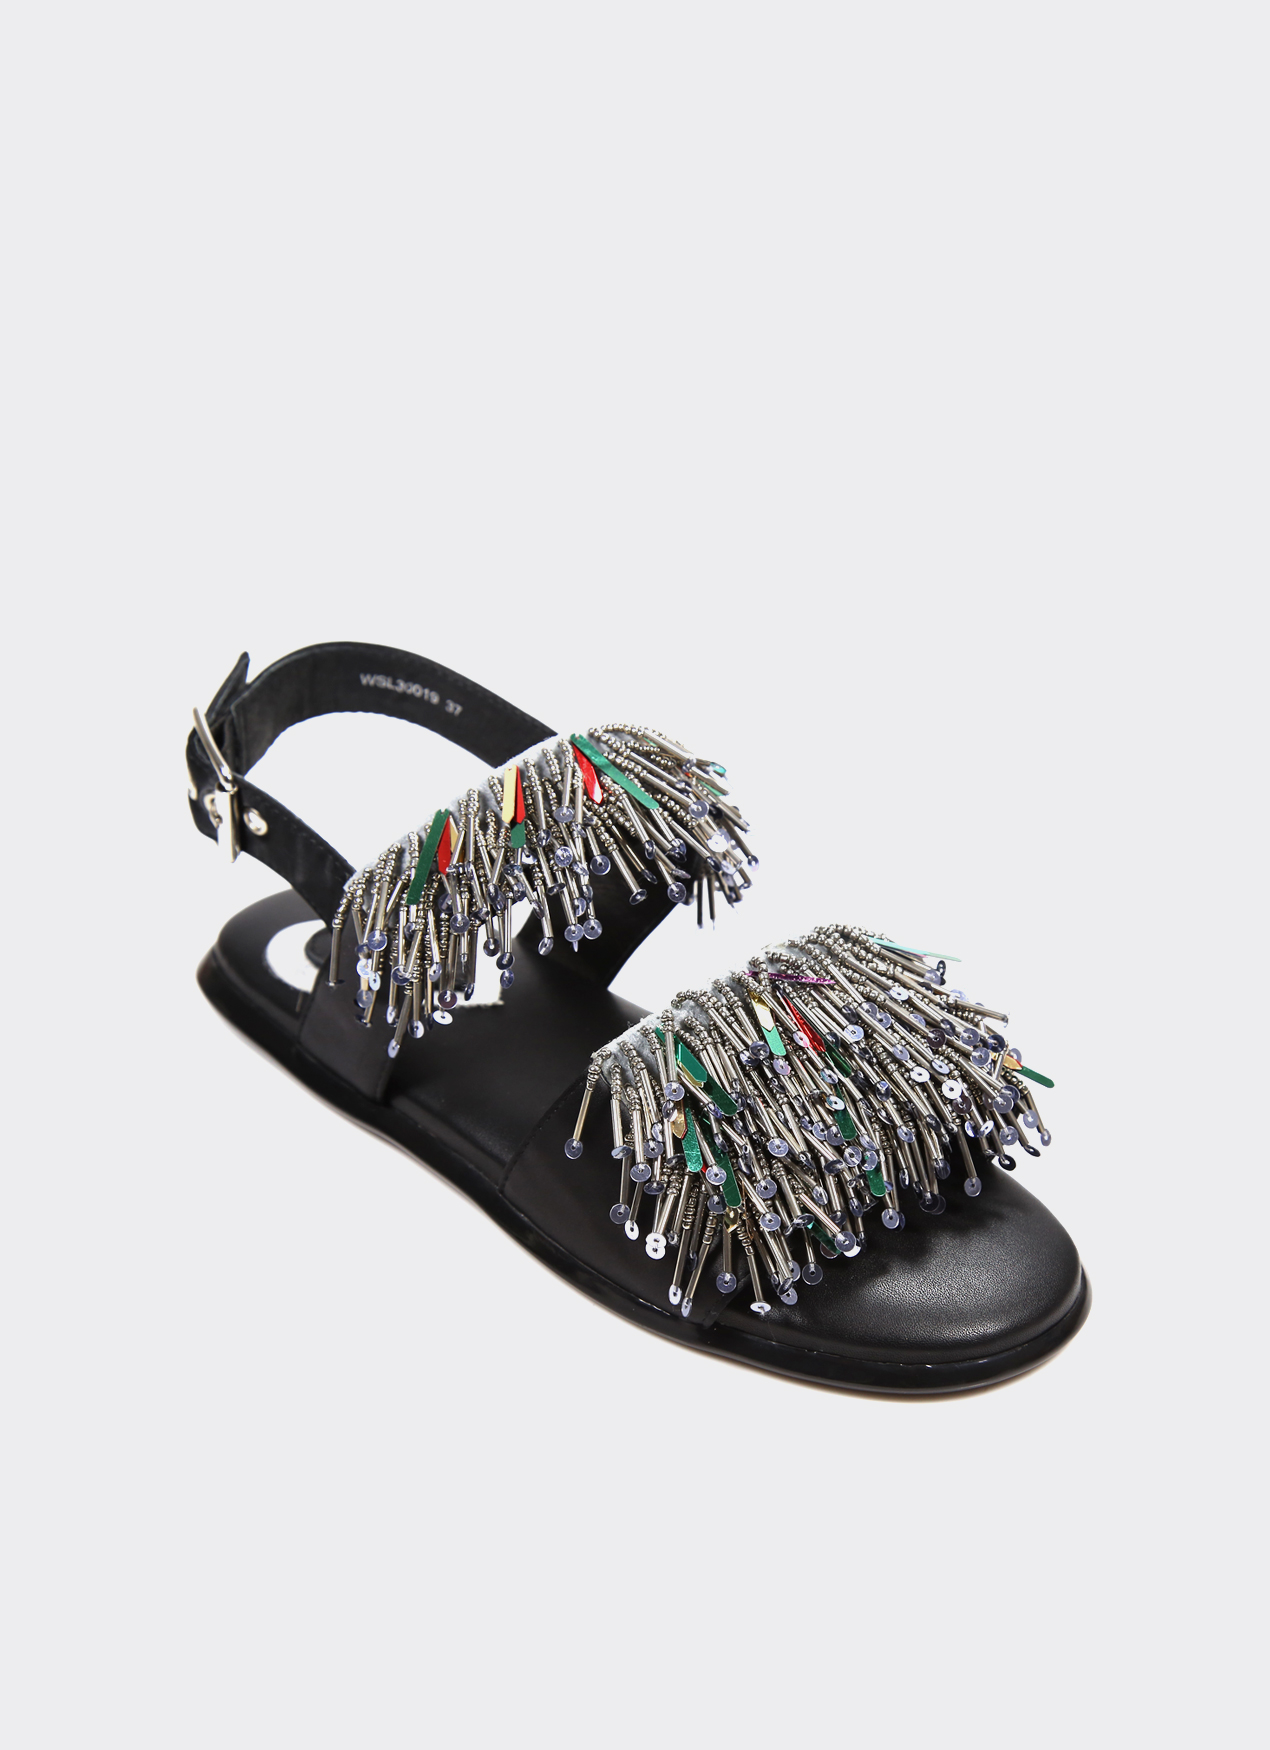 Winston Smith Gray Valerie Sandals